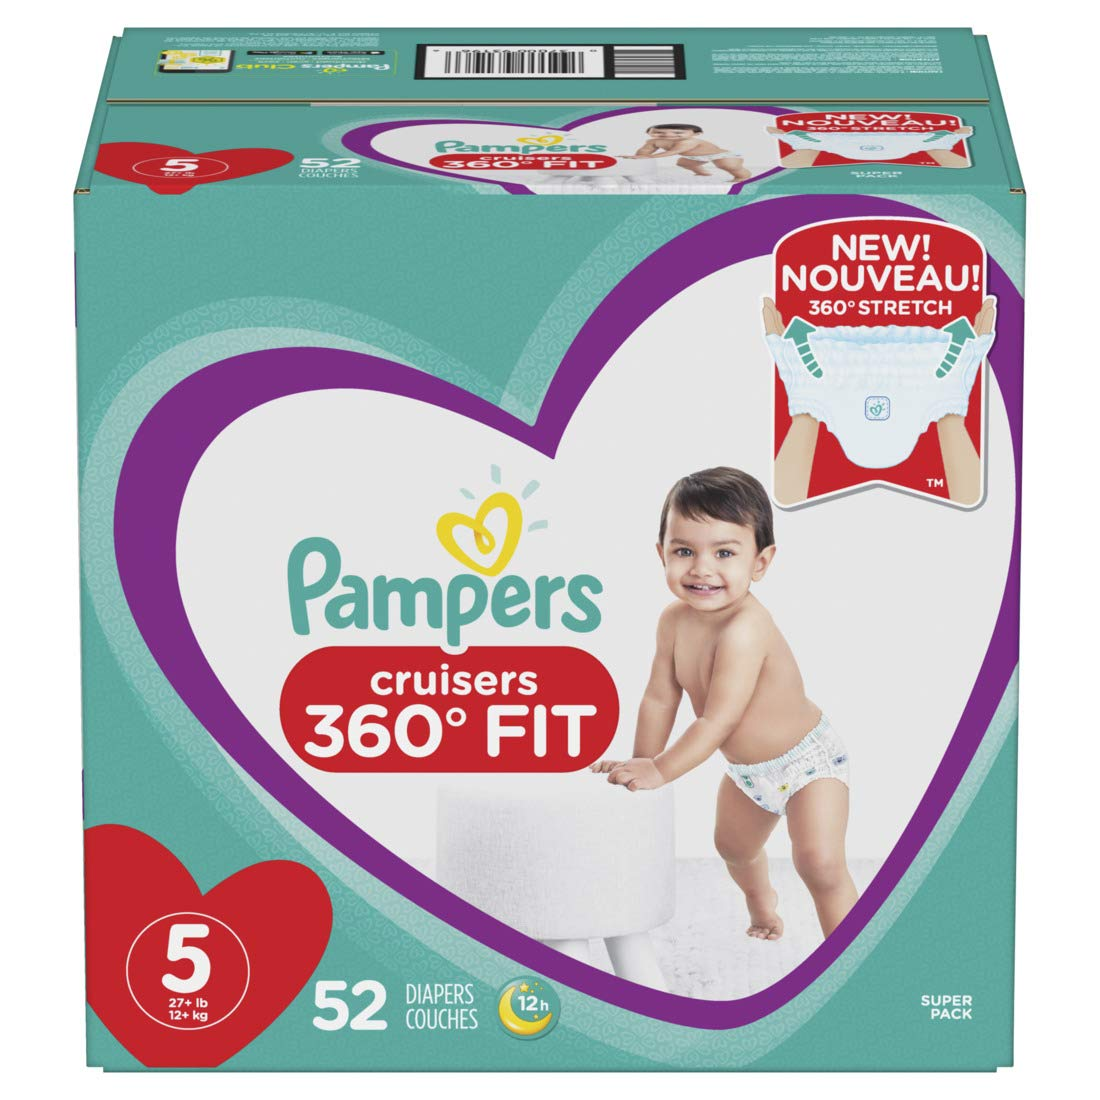 Diapers Size 5, 52 Count - Pampers Pull On Cruisers 360˚ Fit Disposable Baby Diapers with Stretchy Waistband, Super Pack by Pampers